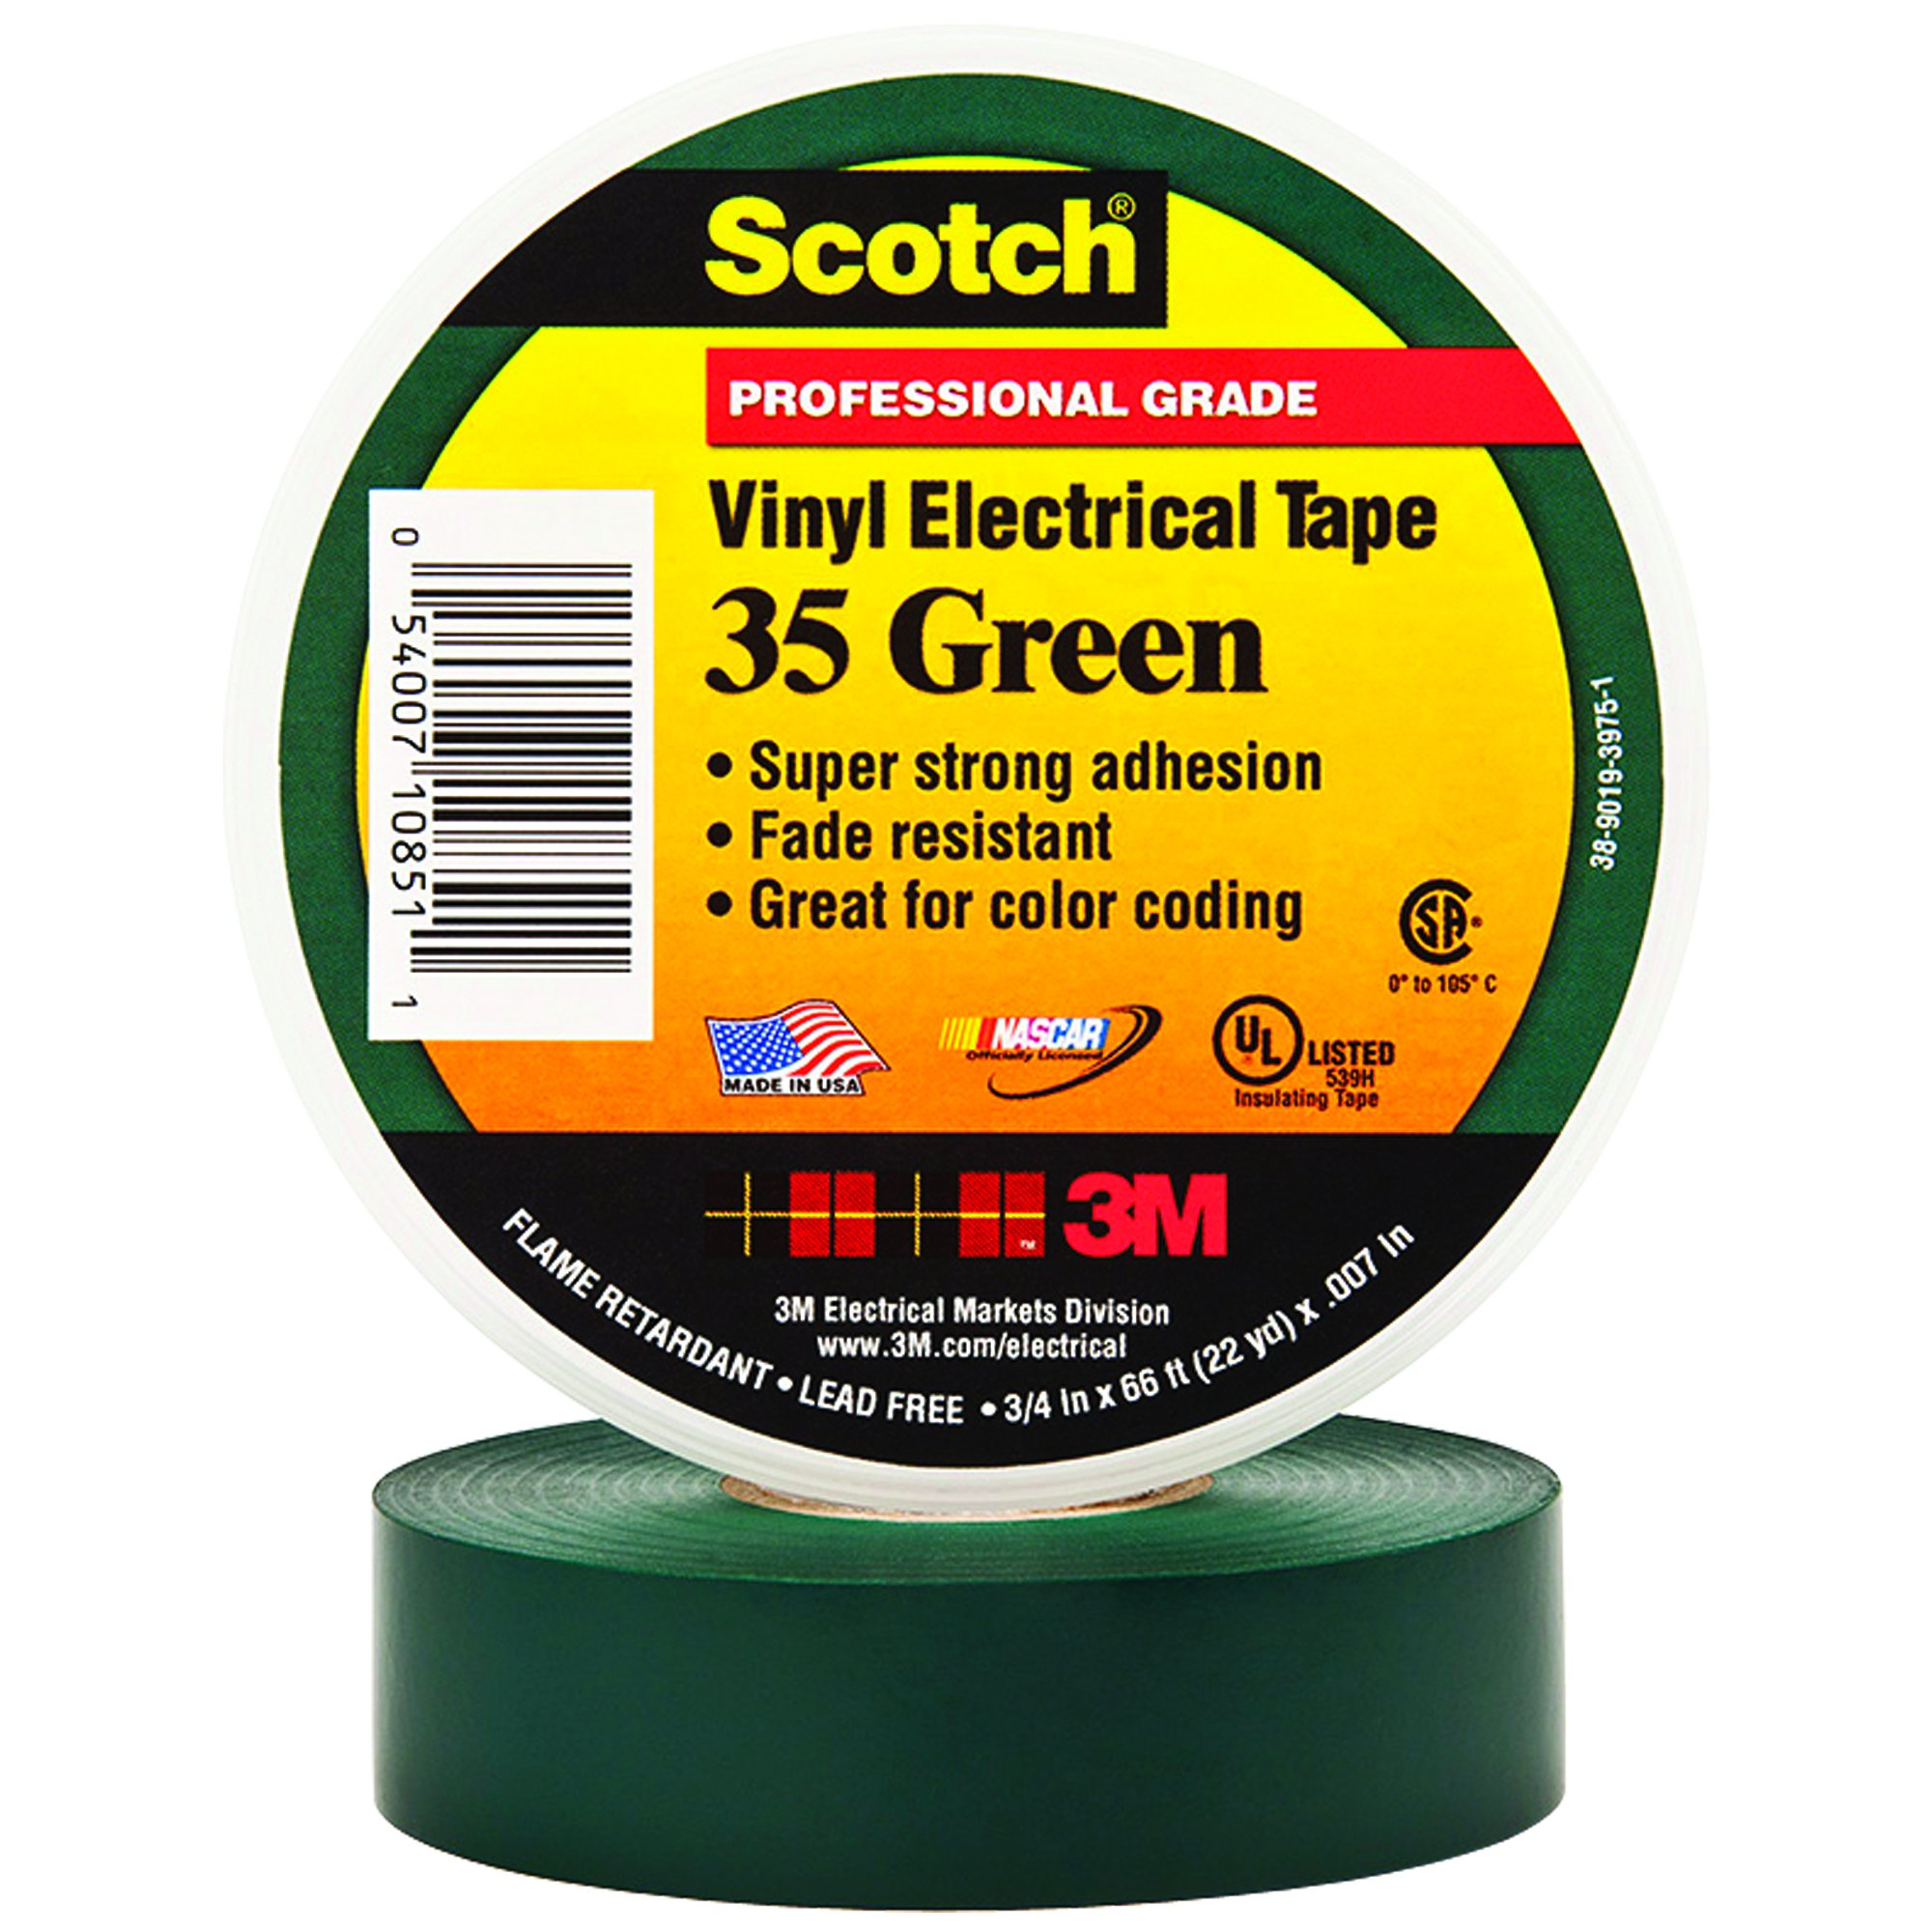 BOX USA BT964035G Green 3M 35 Electrical Tape, 7 mil, 3/4'' x 66' (Pack of 100) by BOX USA